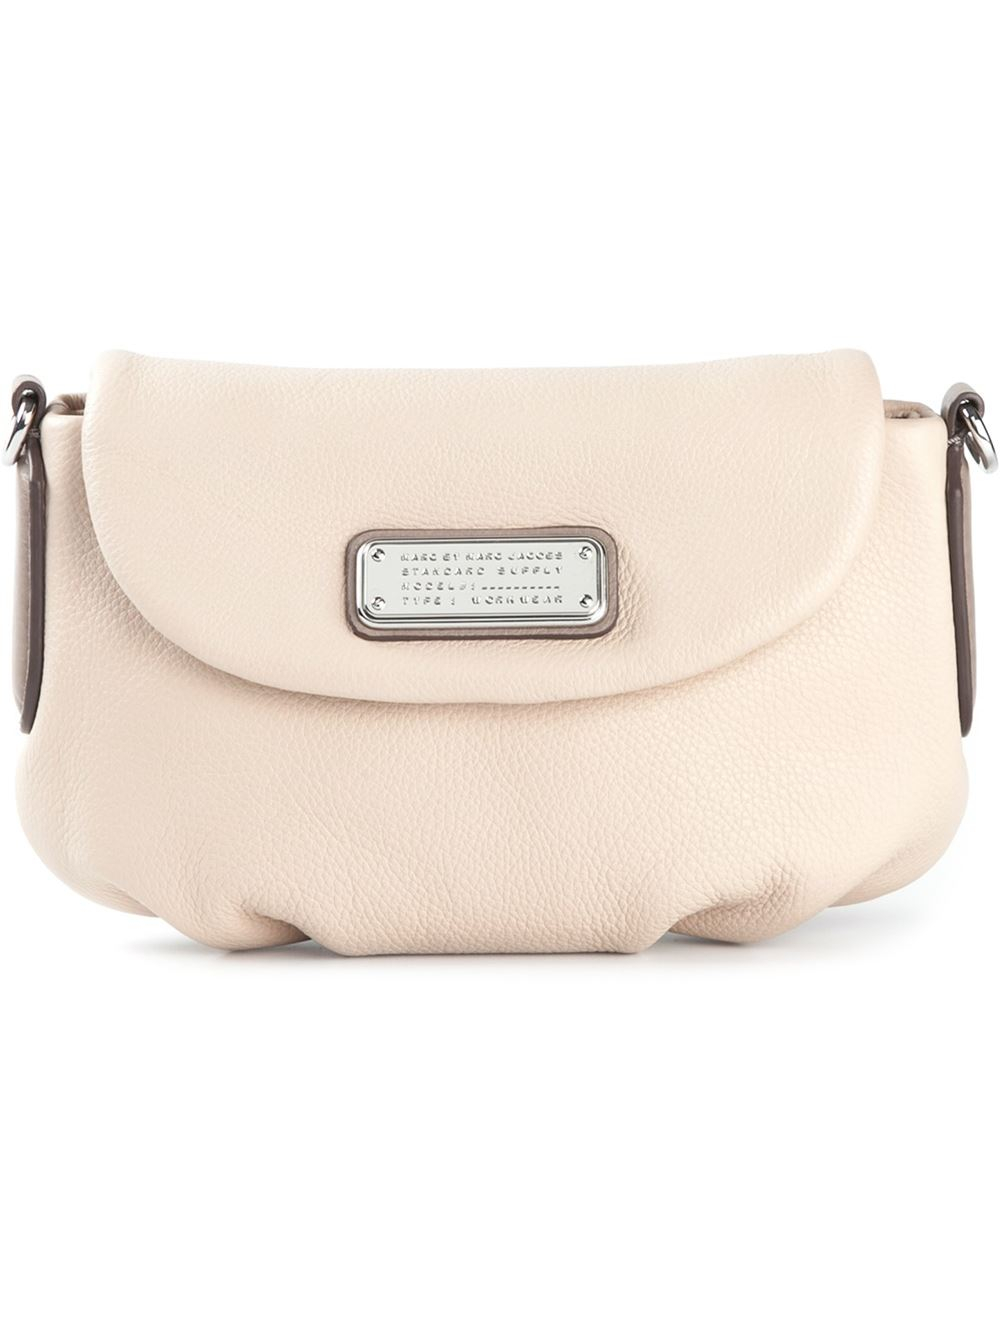 a710648c4766d Lyst - Marc By Marc Jacobs  New Q Flap Percy  Crossbody Bag in Natural